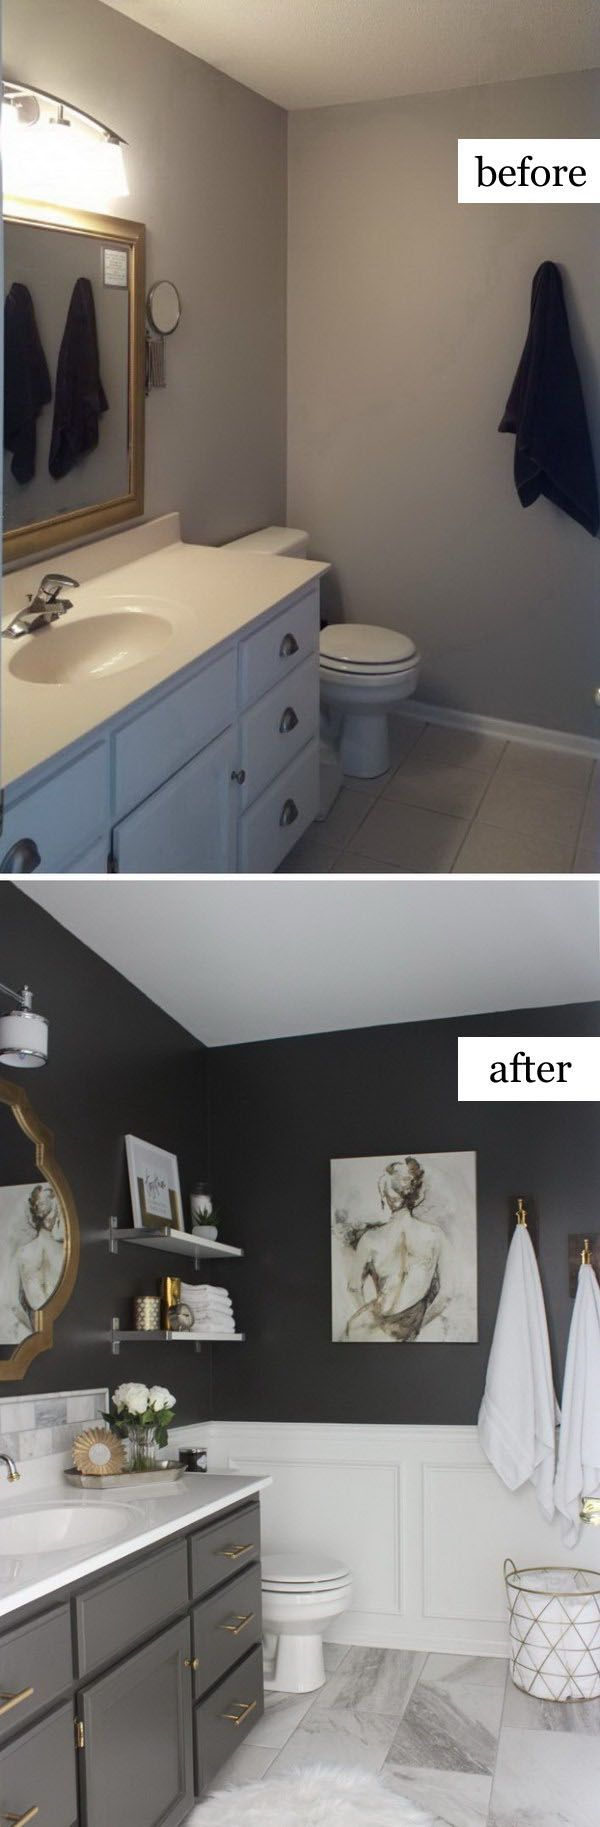 Small Bathroom Remodel Ideas Pinterest best 20+ small bathroom remodeling ideas on pinterest | half